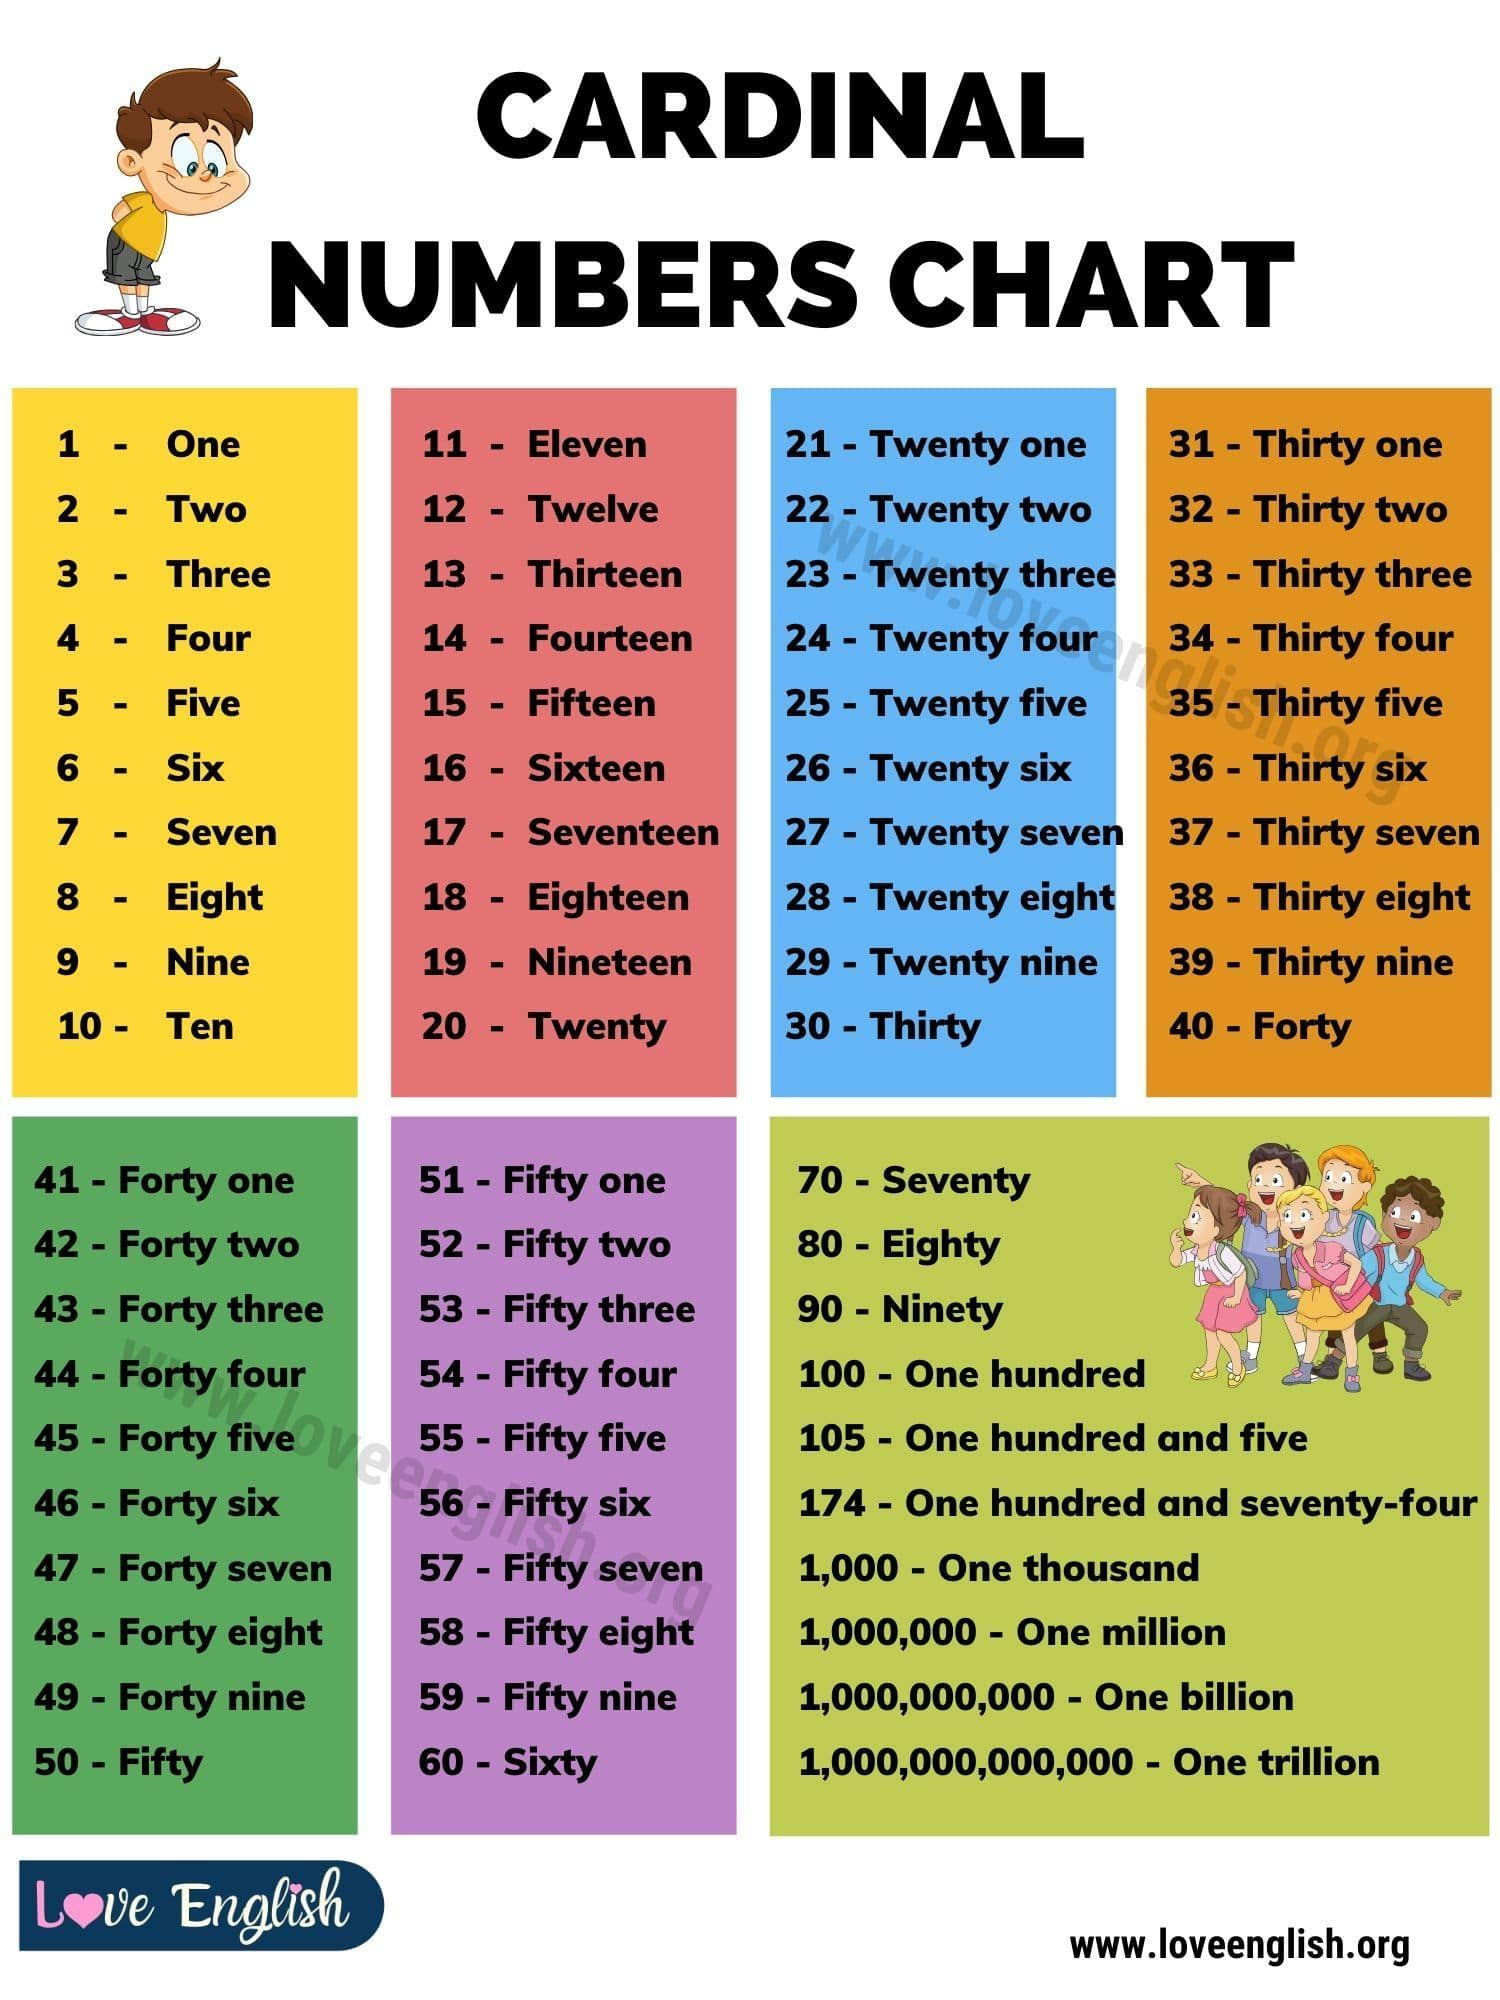 Cardinal Numbers How To Use Cardinal Numbers With Chart And Examples Love English Writing Out Numbers Learn English Words Learn English